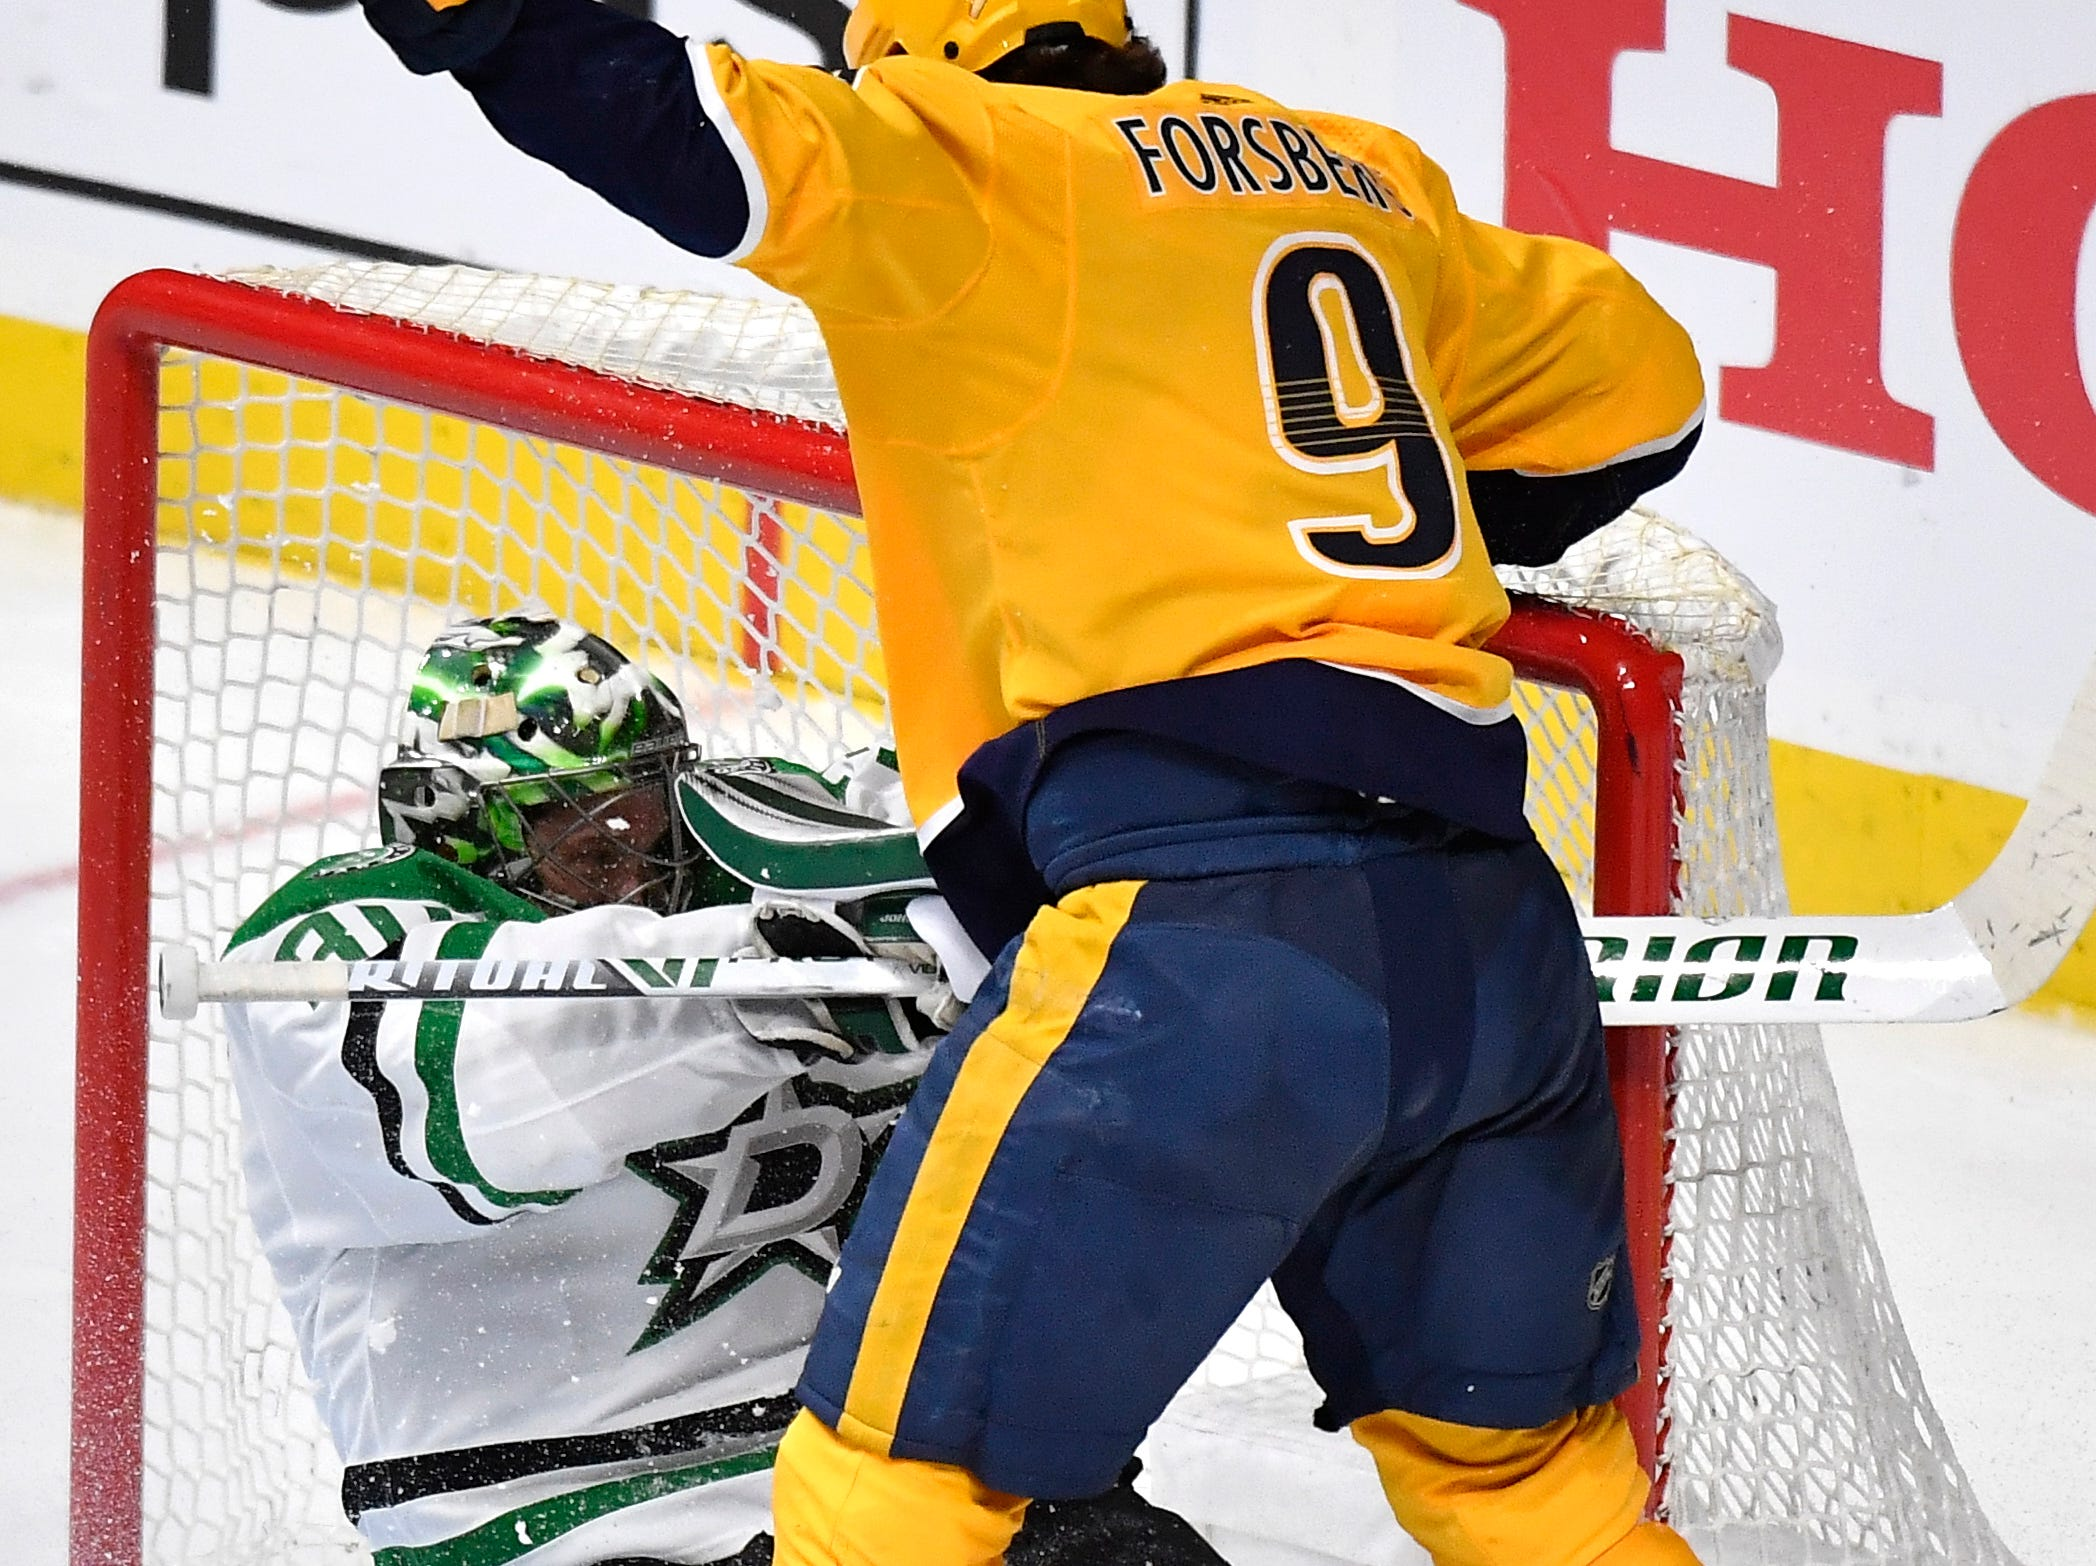 Nashville Predators left wing Filip Forsberg (9) and Dallas Stars goaltender Ben Bishop (30) collide during the third period of the divisional semifinal game at Bridgestone Arena in Nashville, Tenn., Wednesday, April 10, 2019.